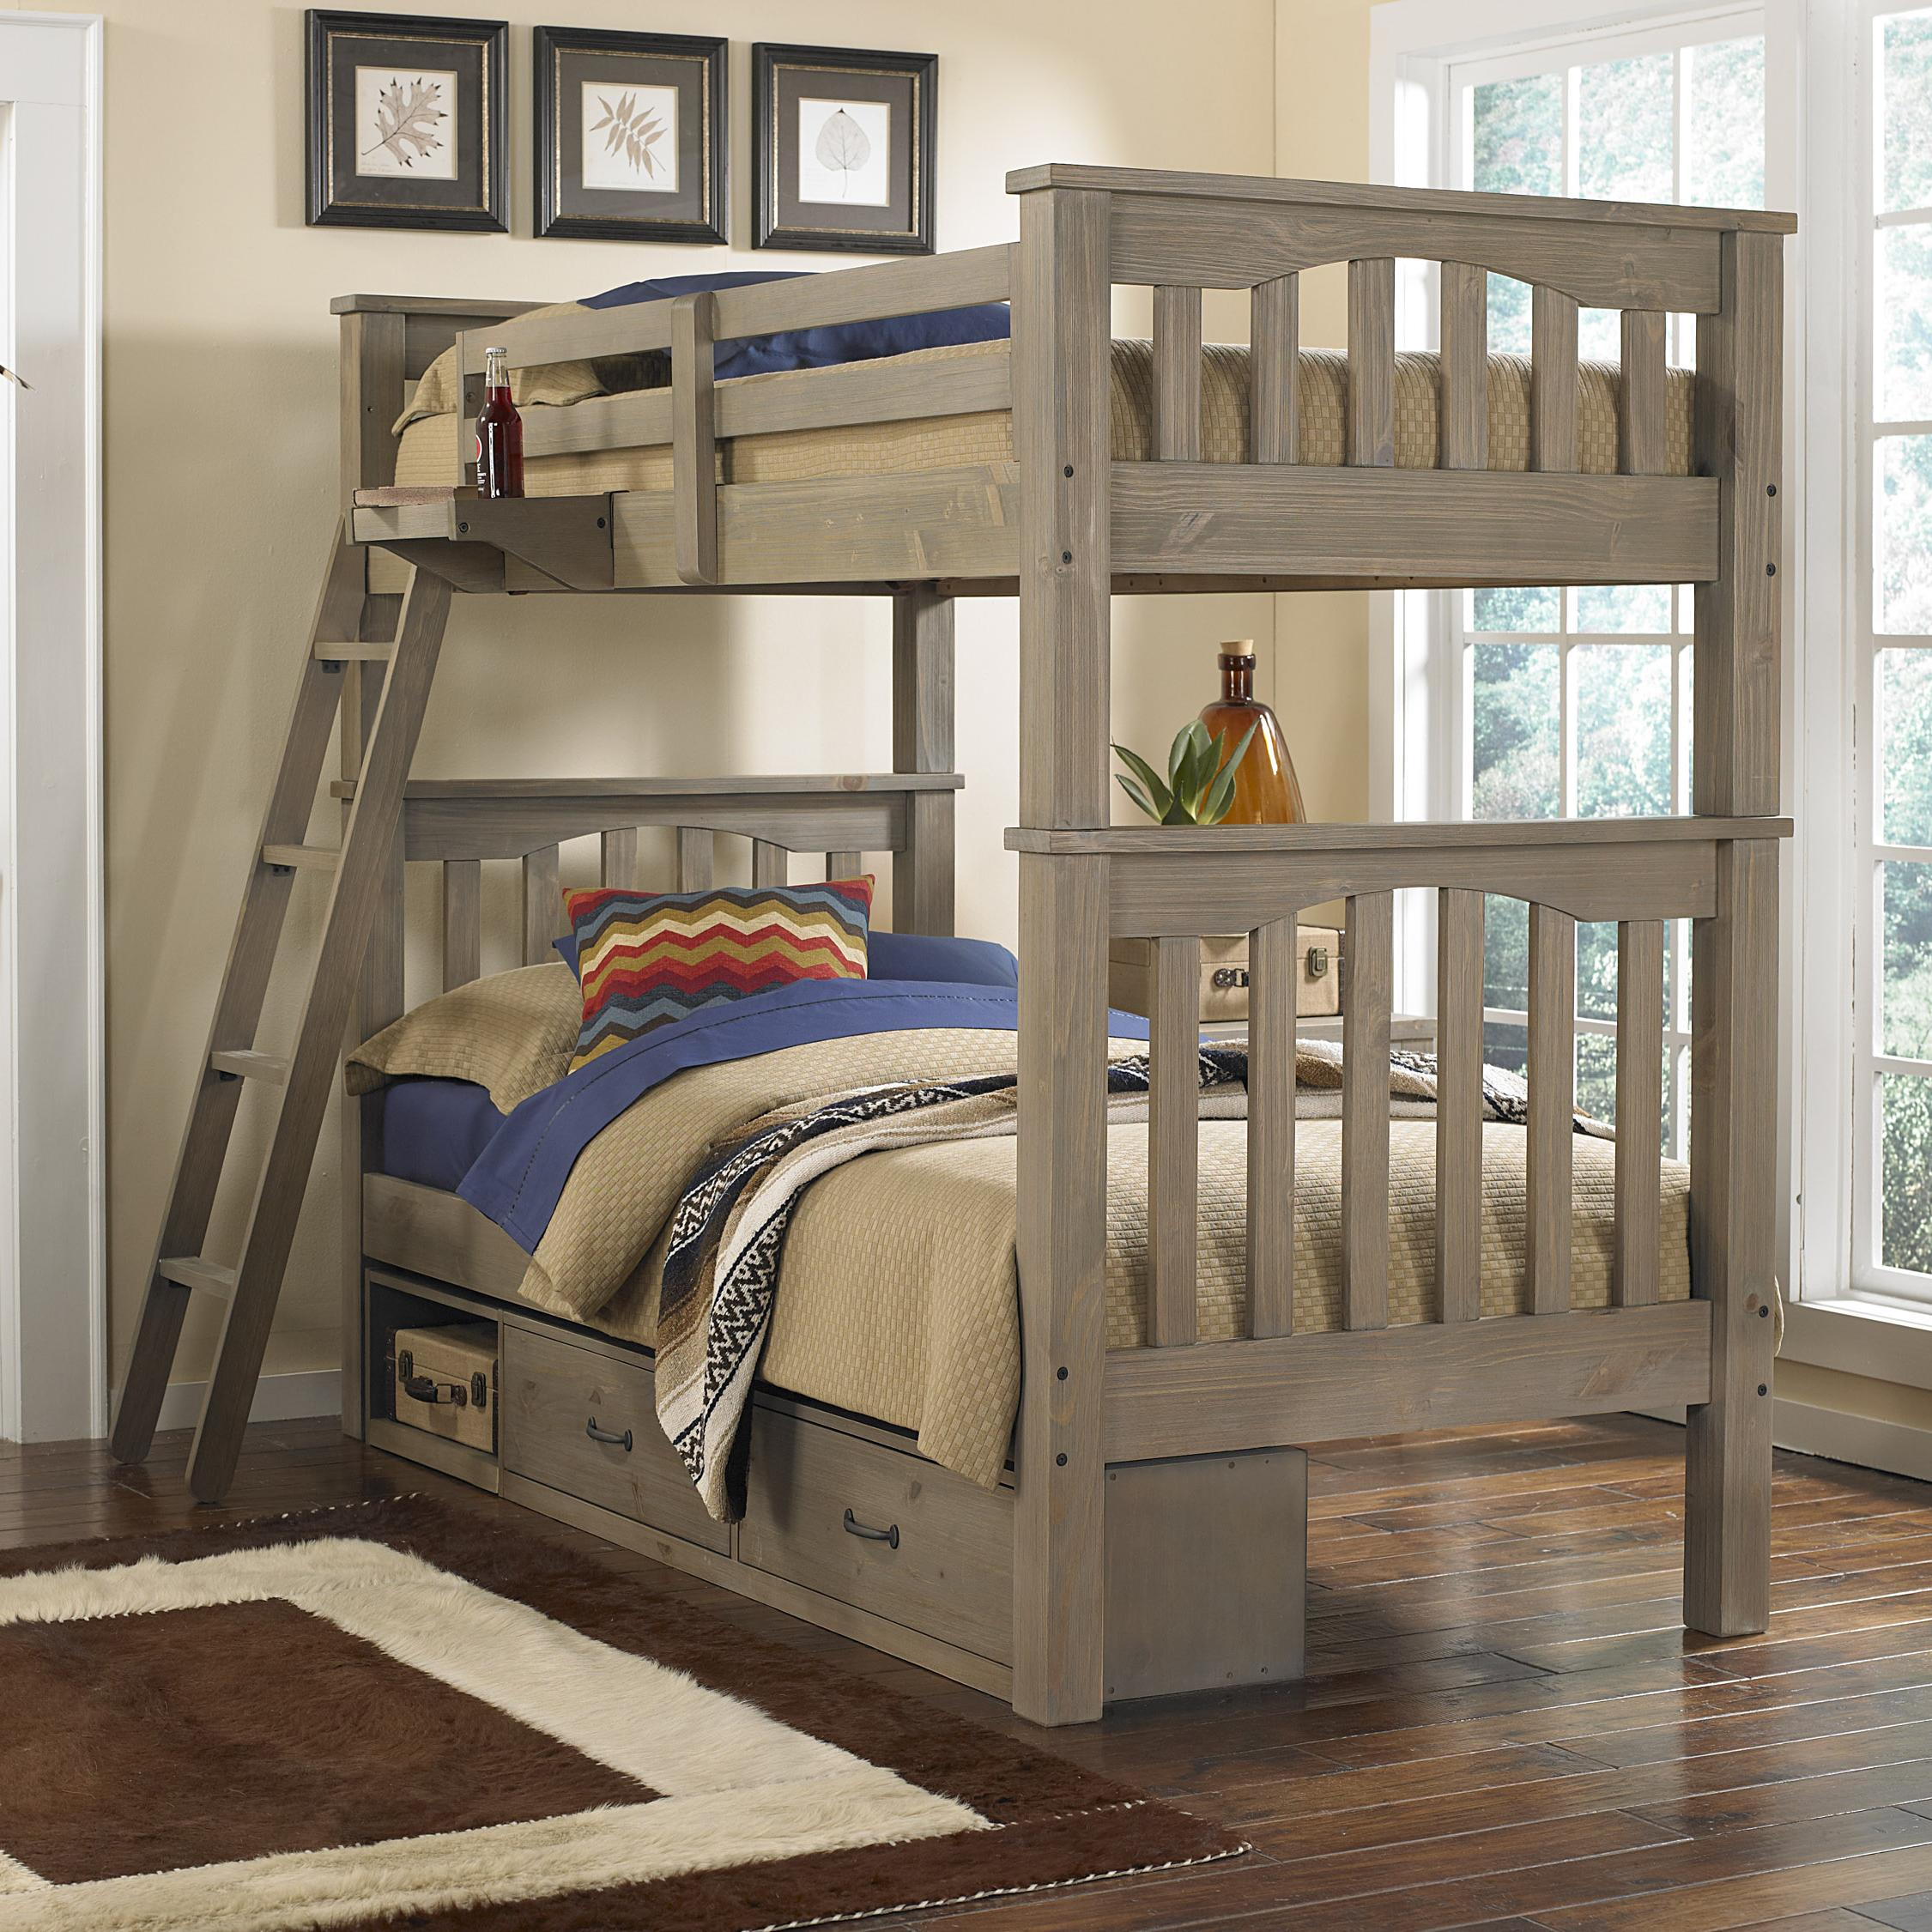 Highlands Twin Over Twin Harper Bunk Bed With Storage by NE Kids at Stoney Creek Furniture